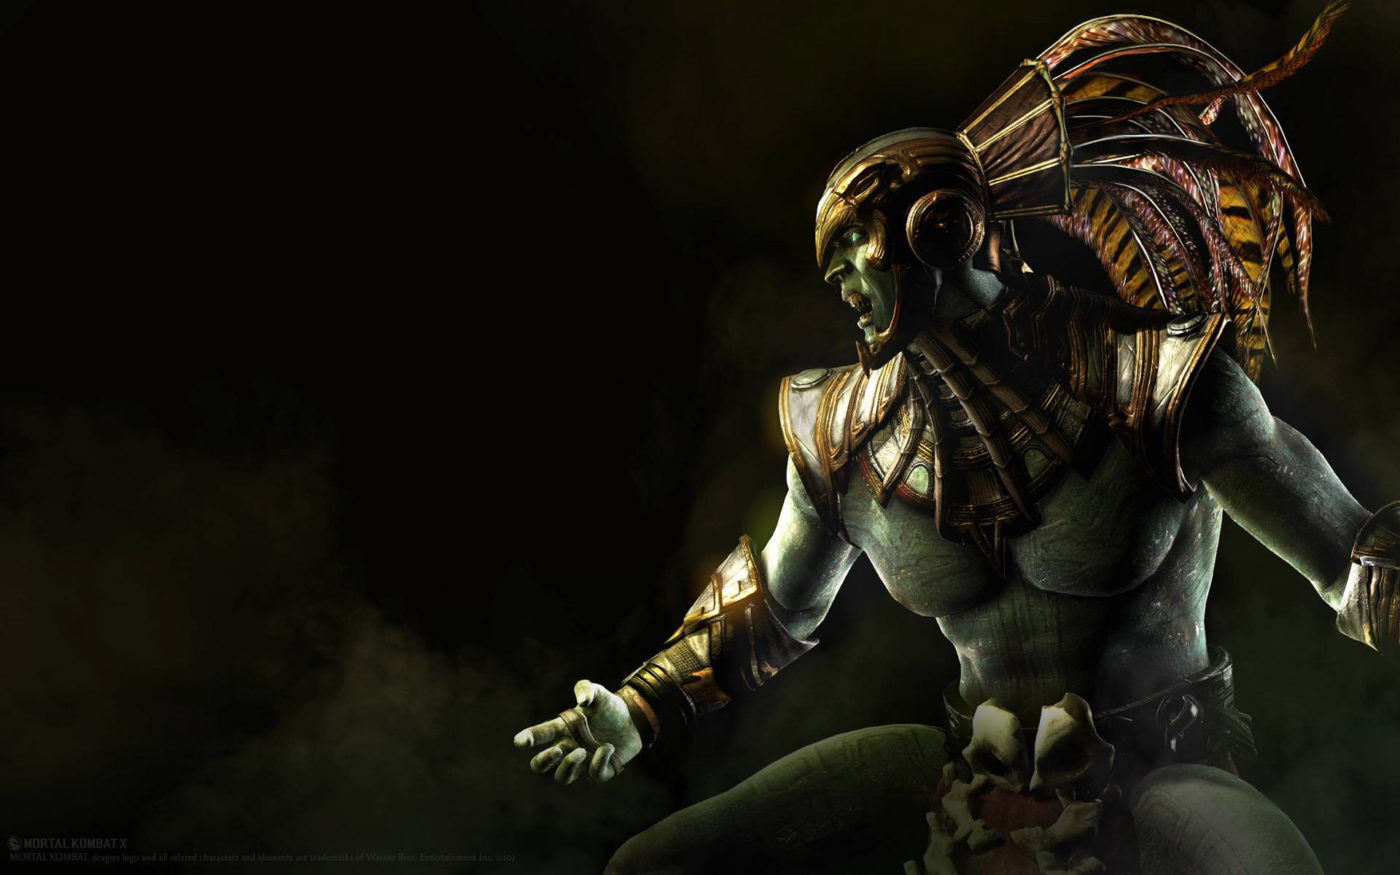 Mortal Kombat X - Possible Character Reveal At Evo 2014